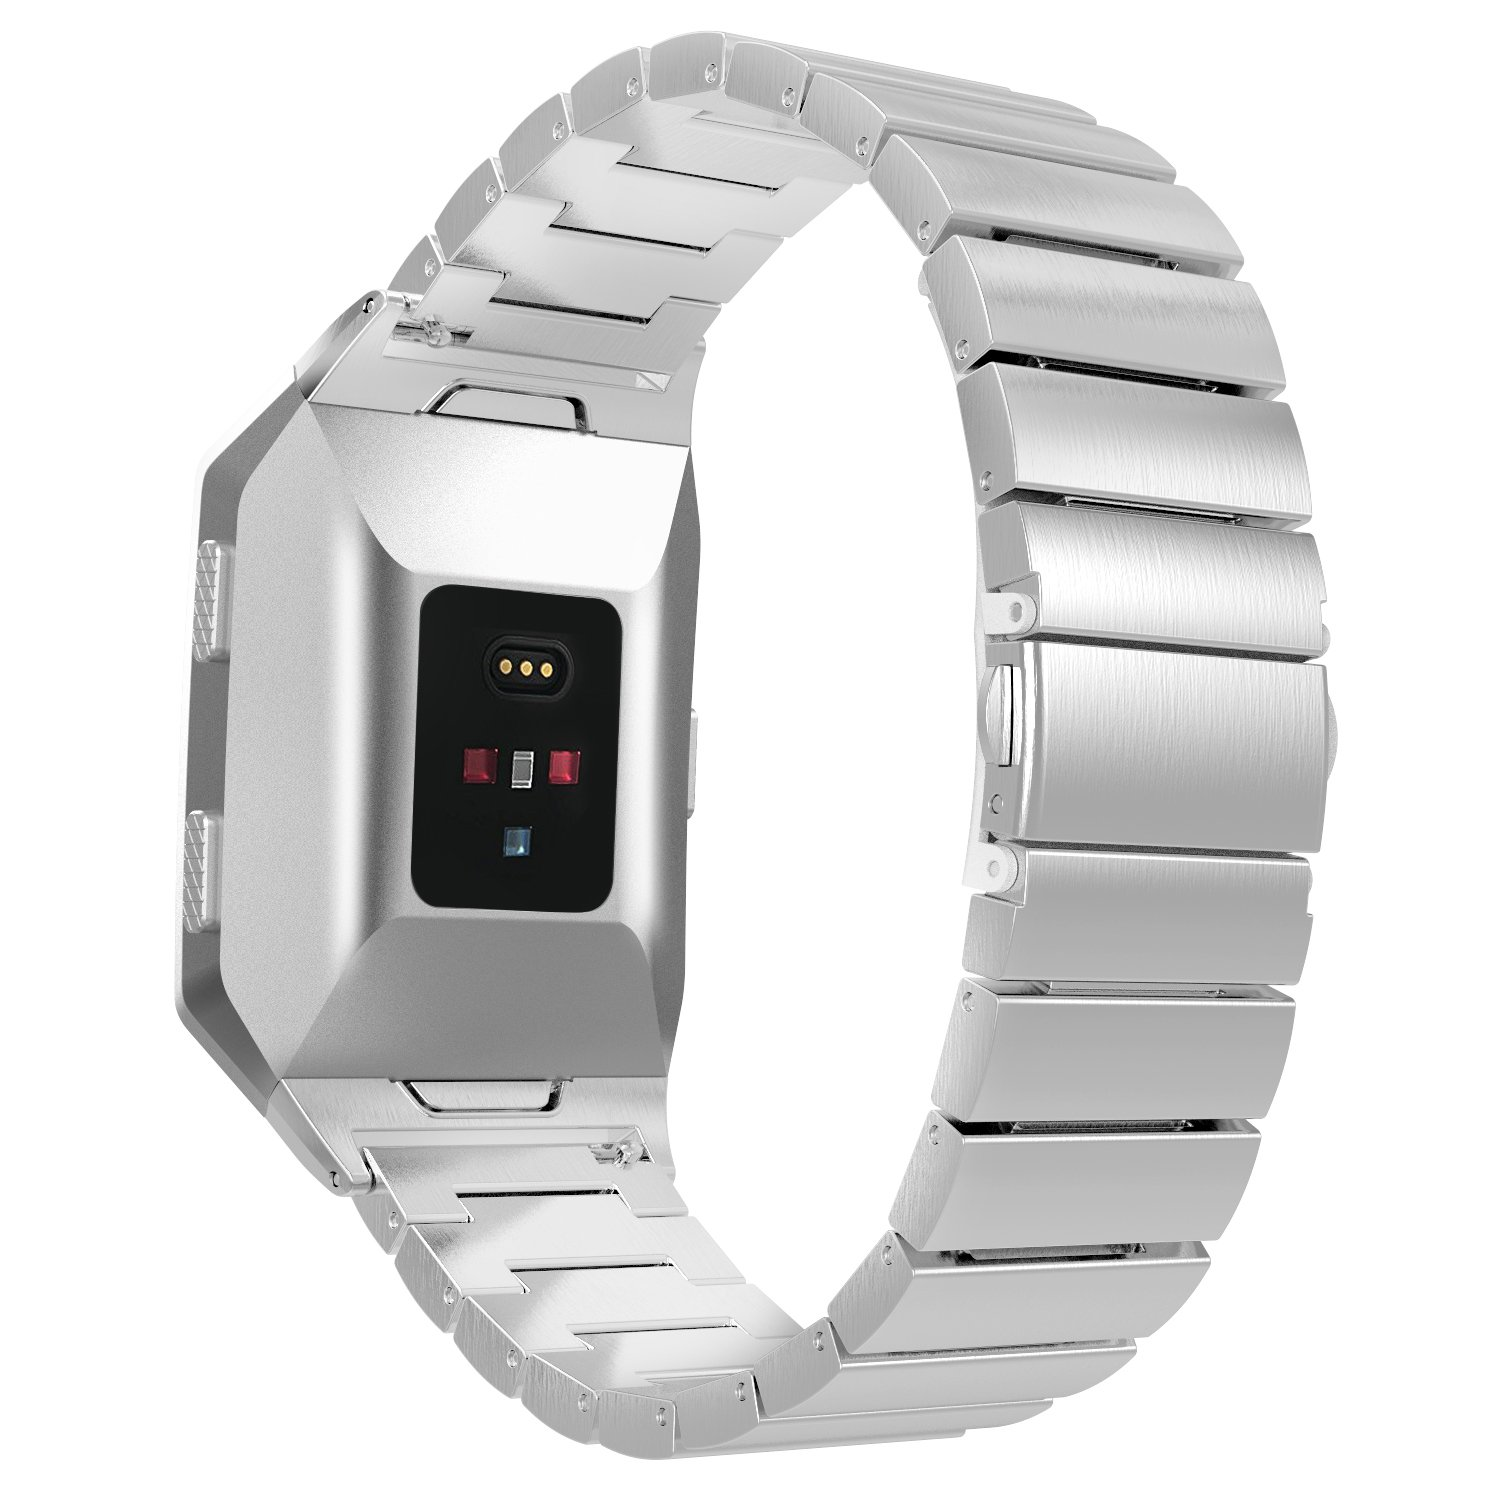 MoKo Fitbit Ionic Watch Band , Stainless Steel Metal Watch Strap Wristband Bracelet with Connectors for Fitbit Ionic Smart Watch, Wrist Size 5.77''-7.87'' (130mm-200mm)- Silver